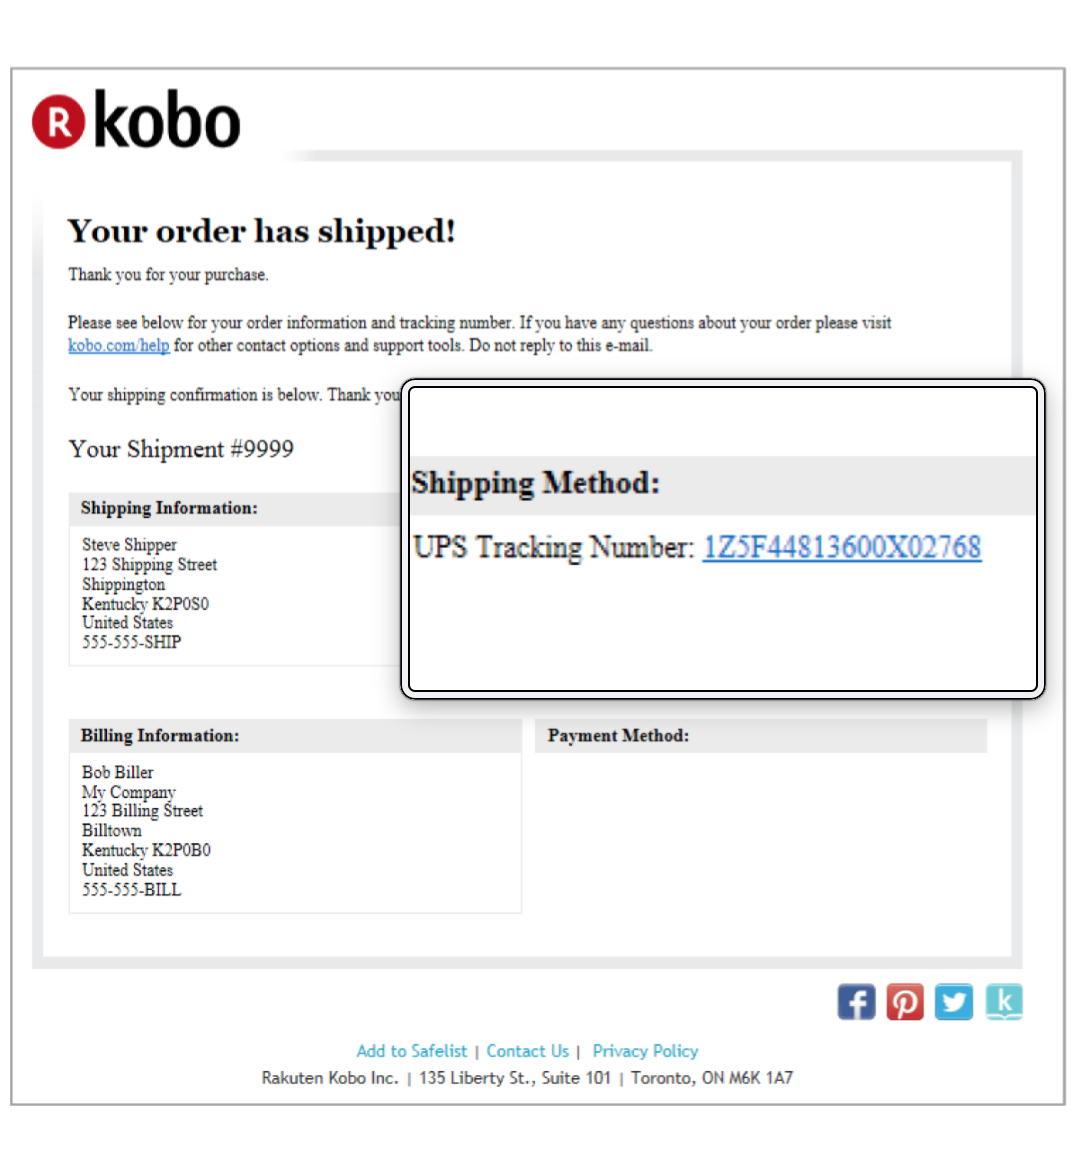 204e145d959 Finding your tracking number. After you purchase ...